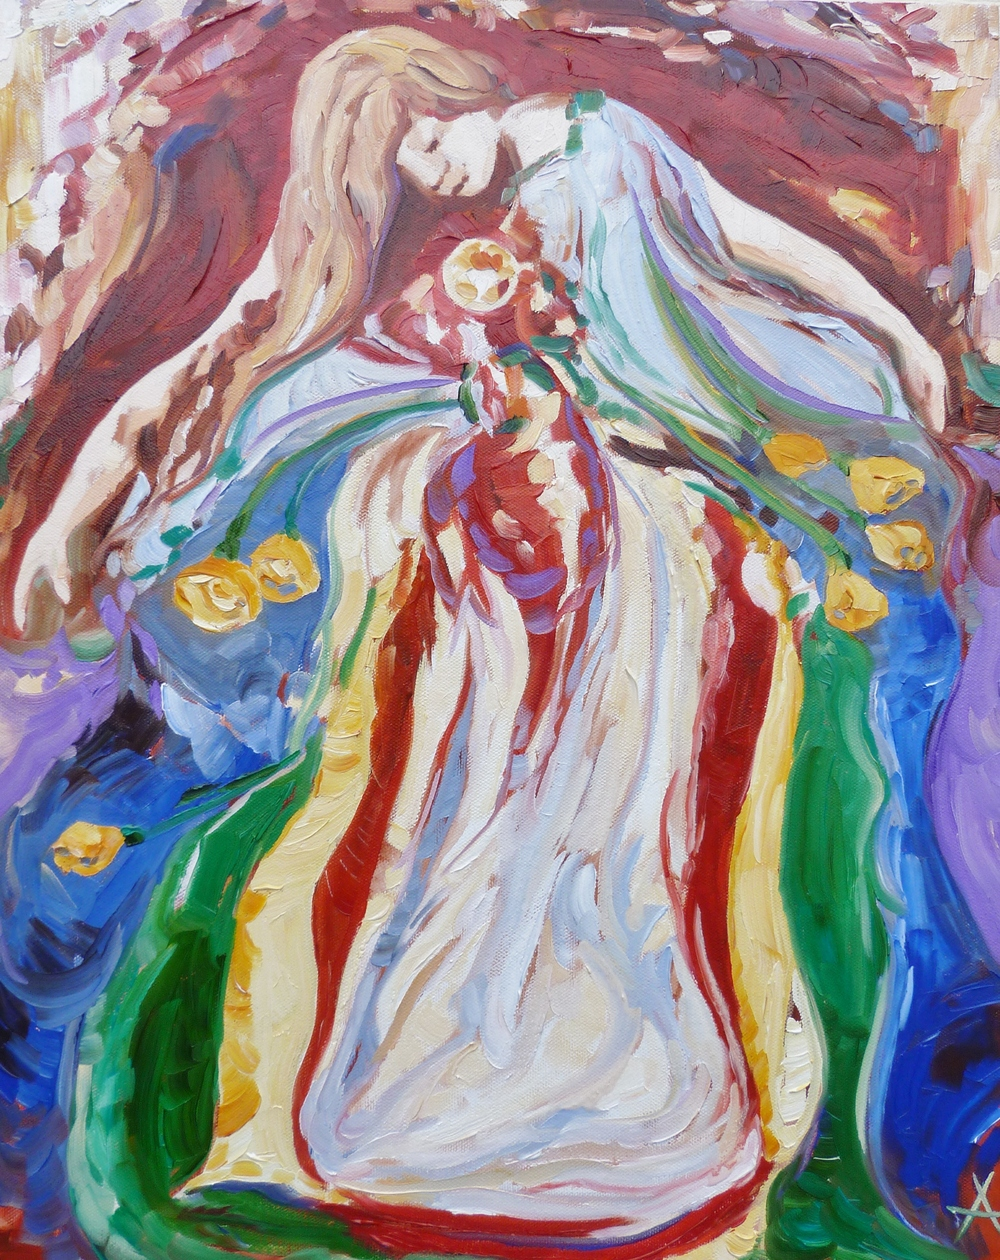 "SOLD, The Goddess Brigid, Copyright 2012 Hirschten, Oil on Canvas, 16"" x 20"""